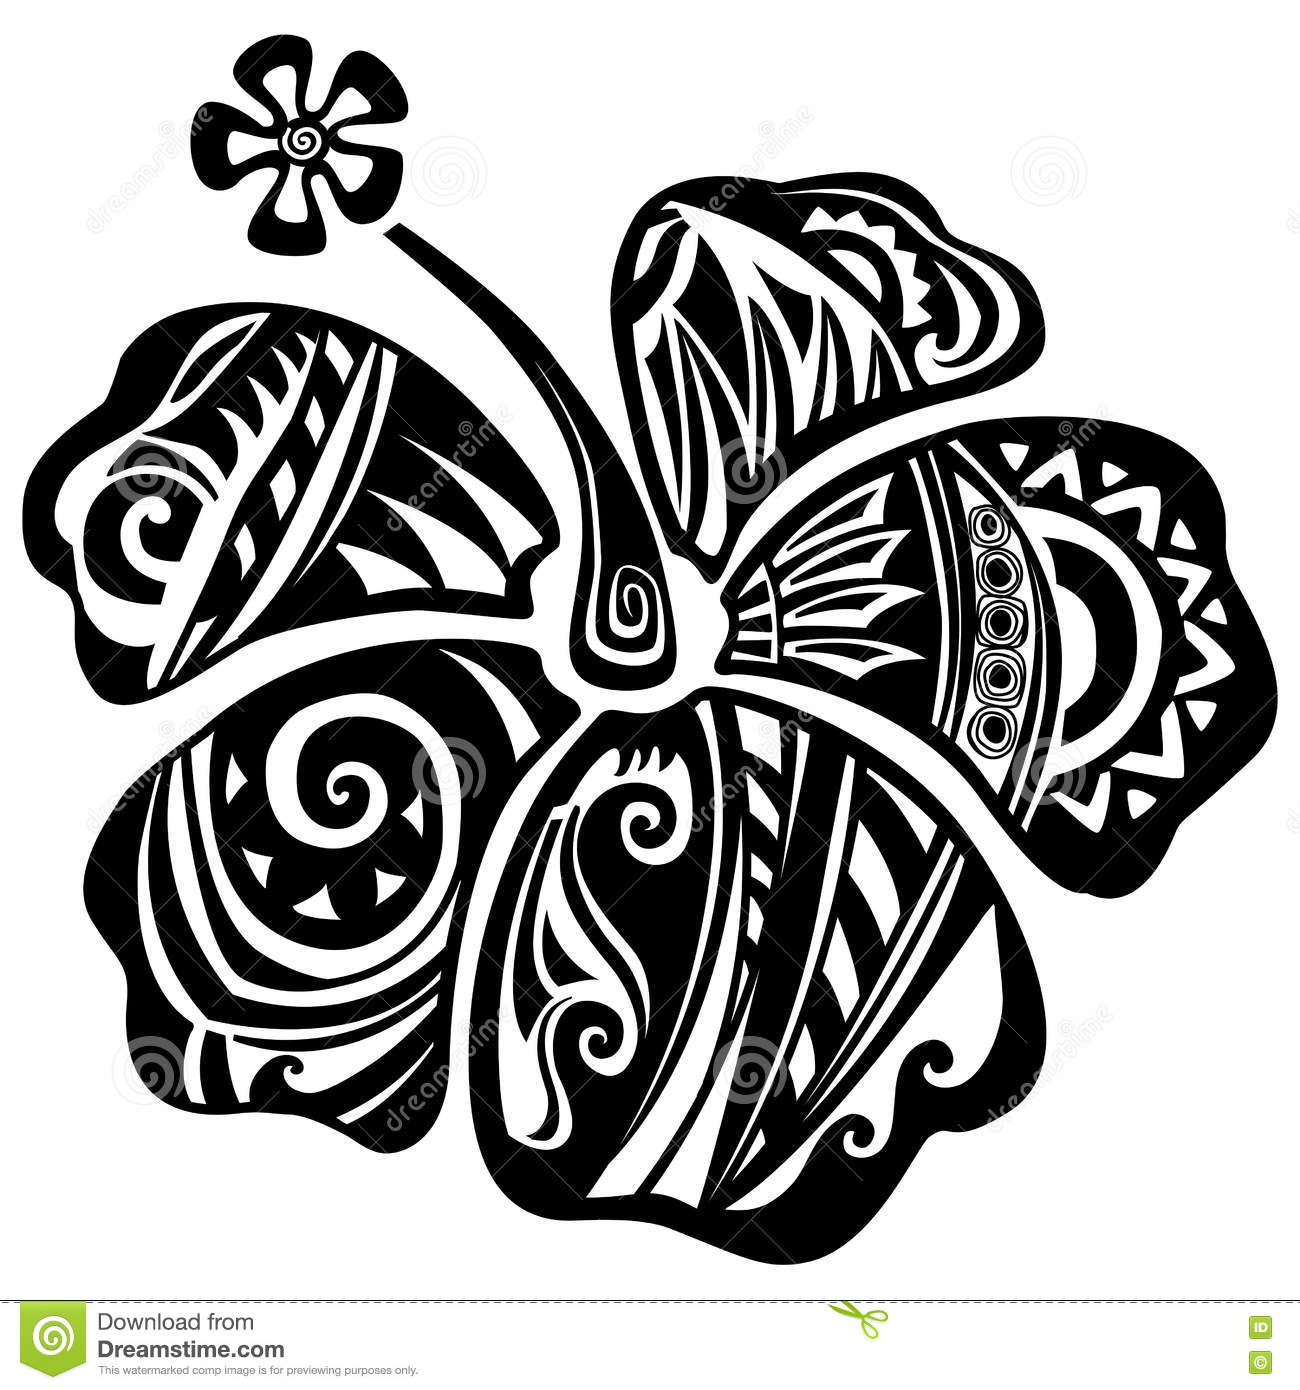 Hibiscus Black And White Stock Vector Illustration Of Maui 76207321